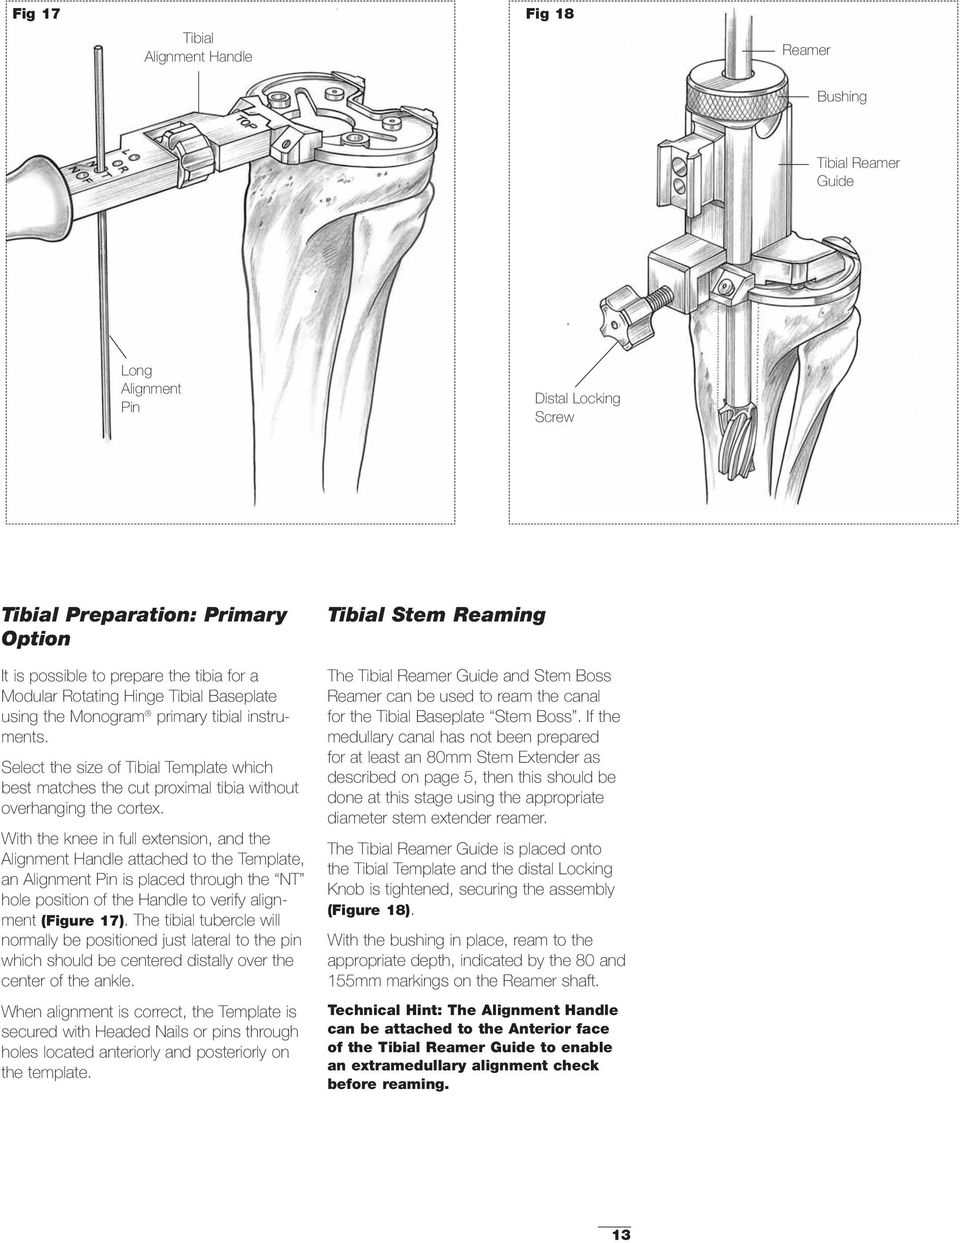 With the knee in full extension, and the Alignment Handle attached to the Template, an Alignment Pin is placed through the NT hole position of the Handle to verify alignment (Figure 17).